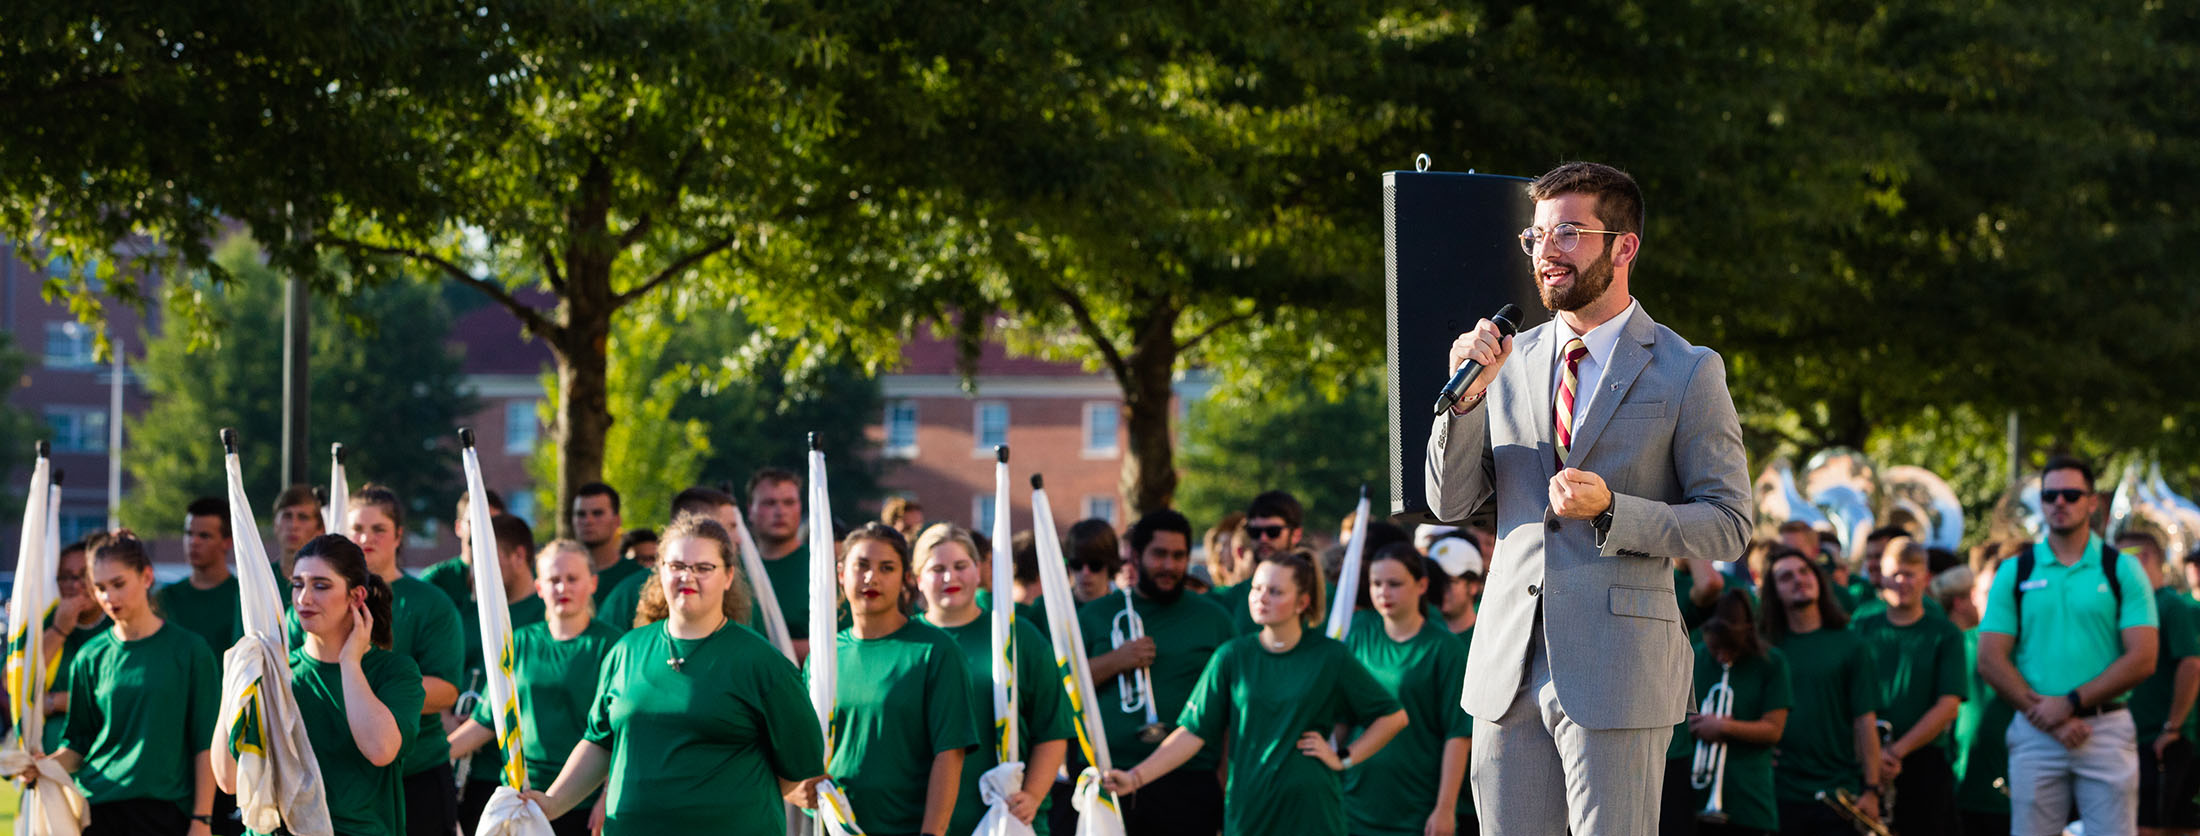 sga president addresses a crowd at paint the town green and gold